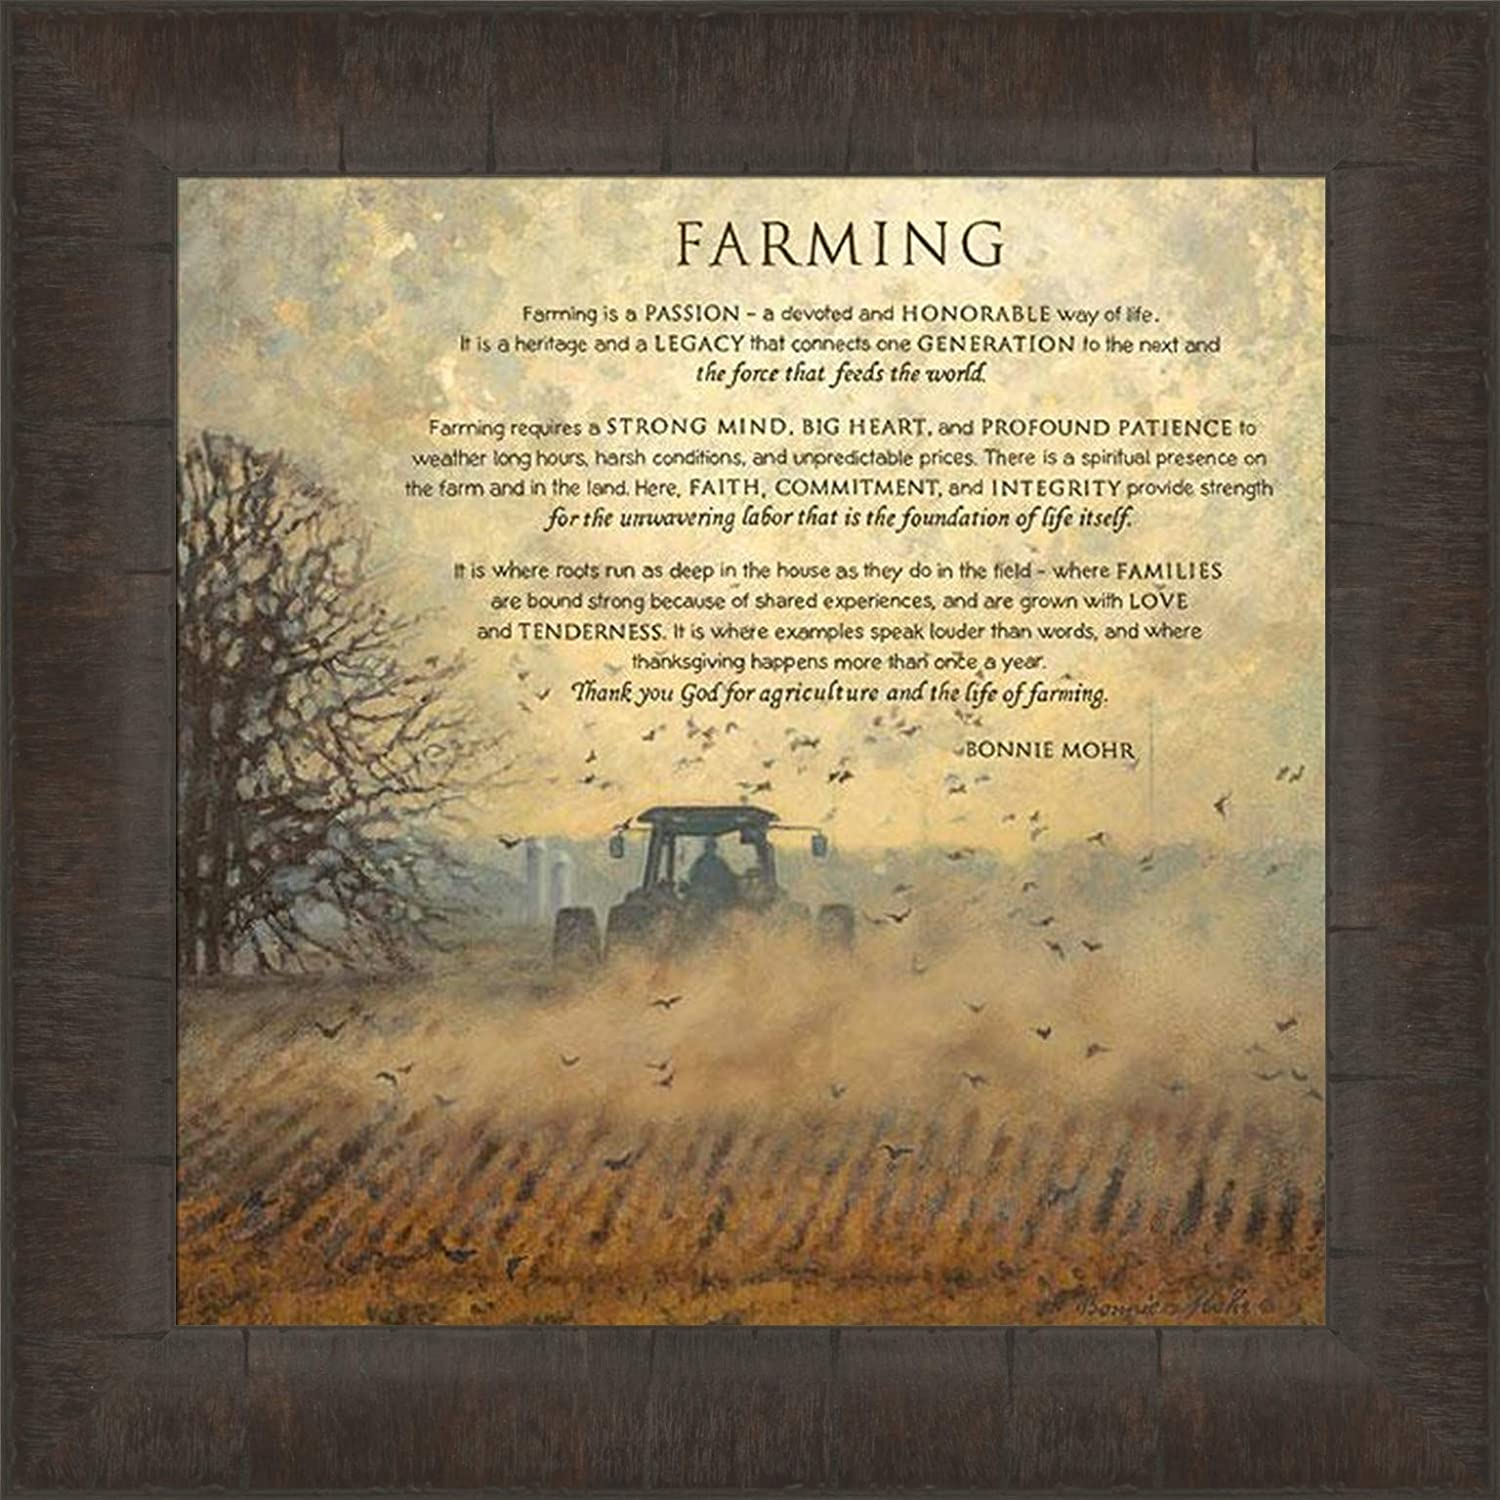 Home Cabin Décor Farming by Bonnie Mohr 15x15 Tractor Field Poem Sign Agriculture Farm Farmer Crops Inspirational Framed Art Print Picture